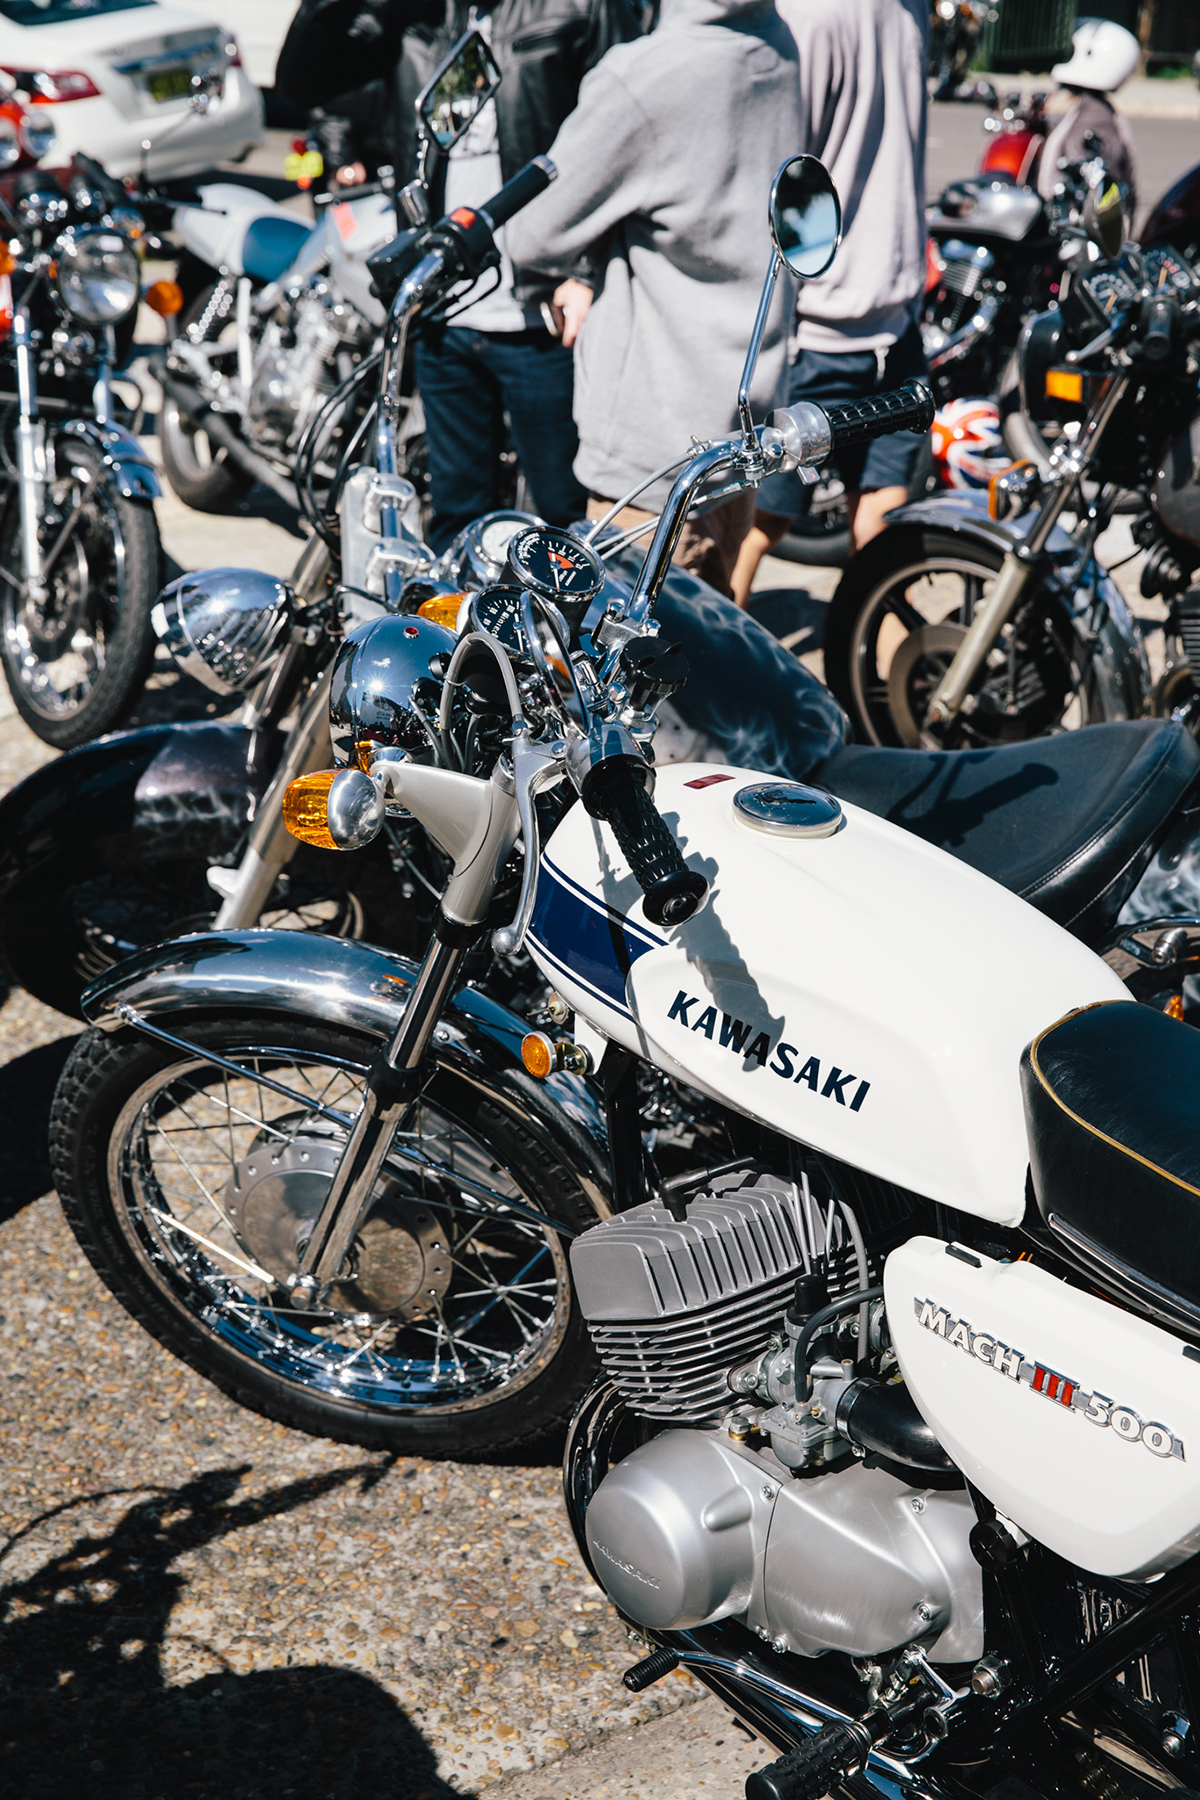 Surfside_Motorcycle_Japanese_8569